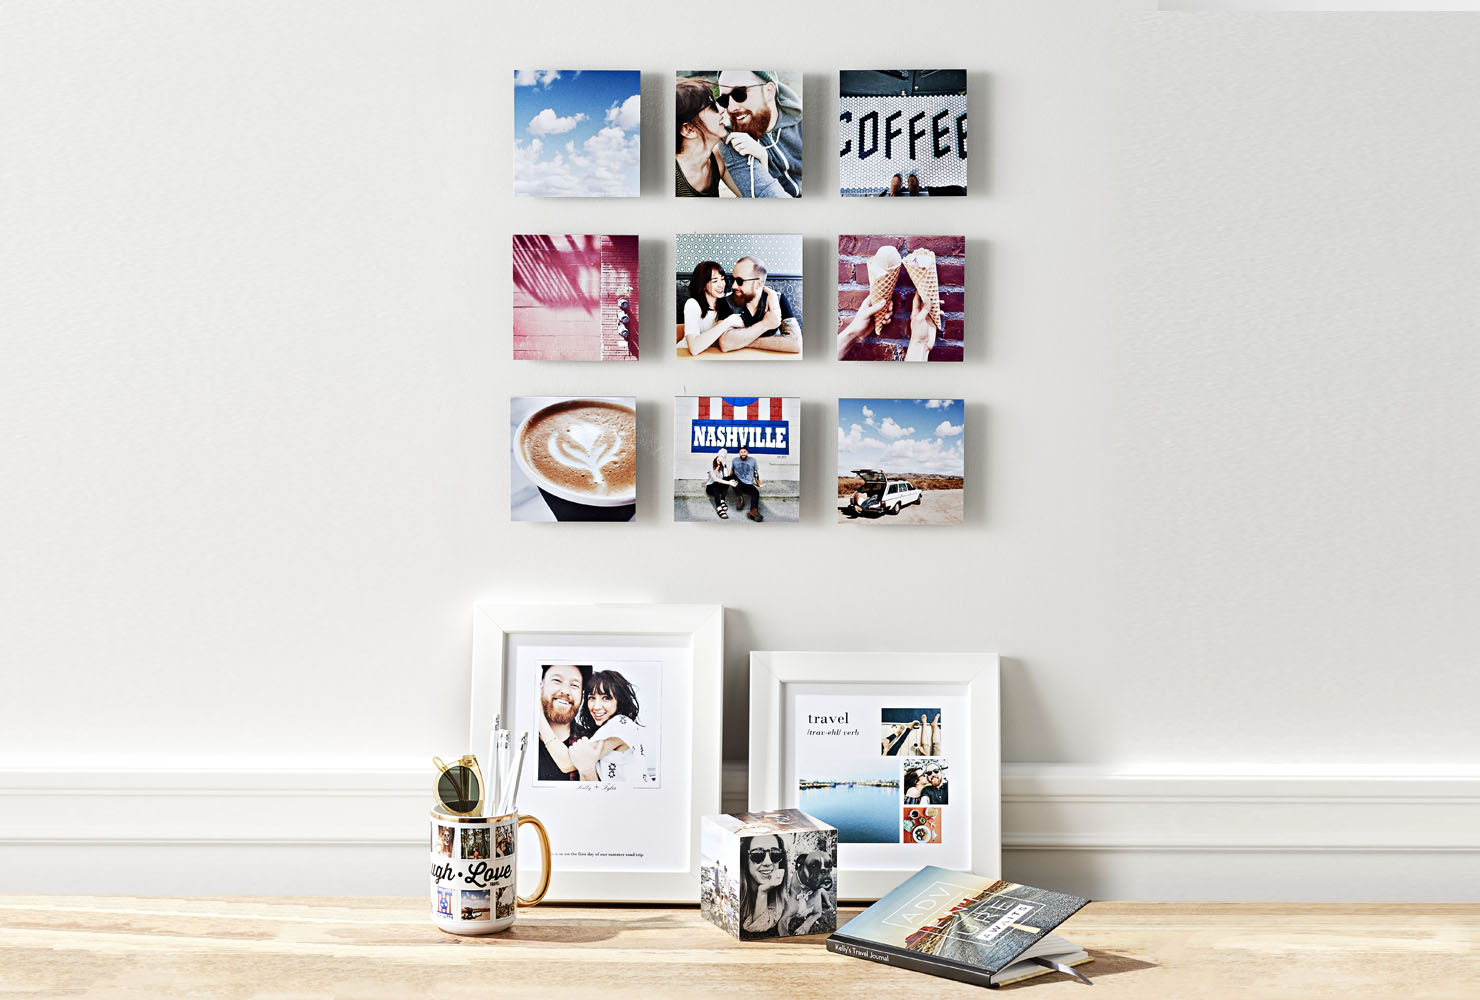 Square photo prints on wall.